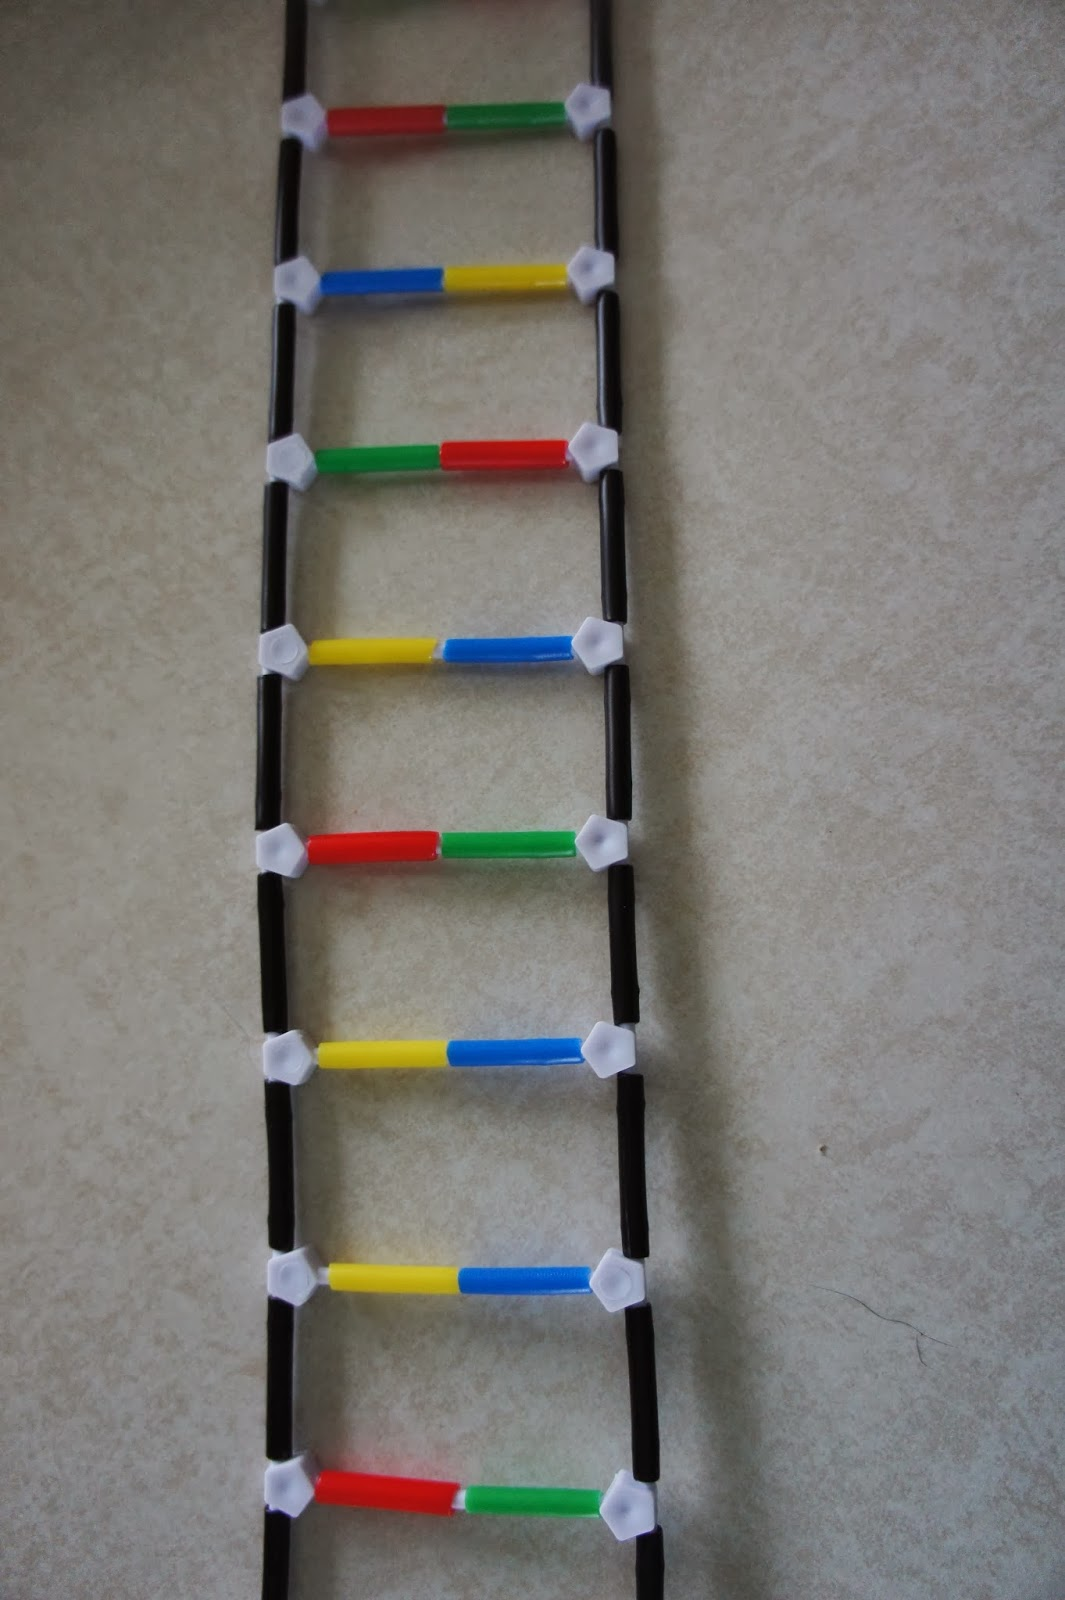 Dna Model Pipe Cleaners - Acpfoto